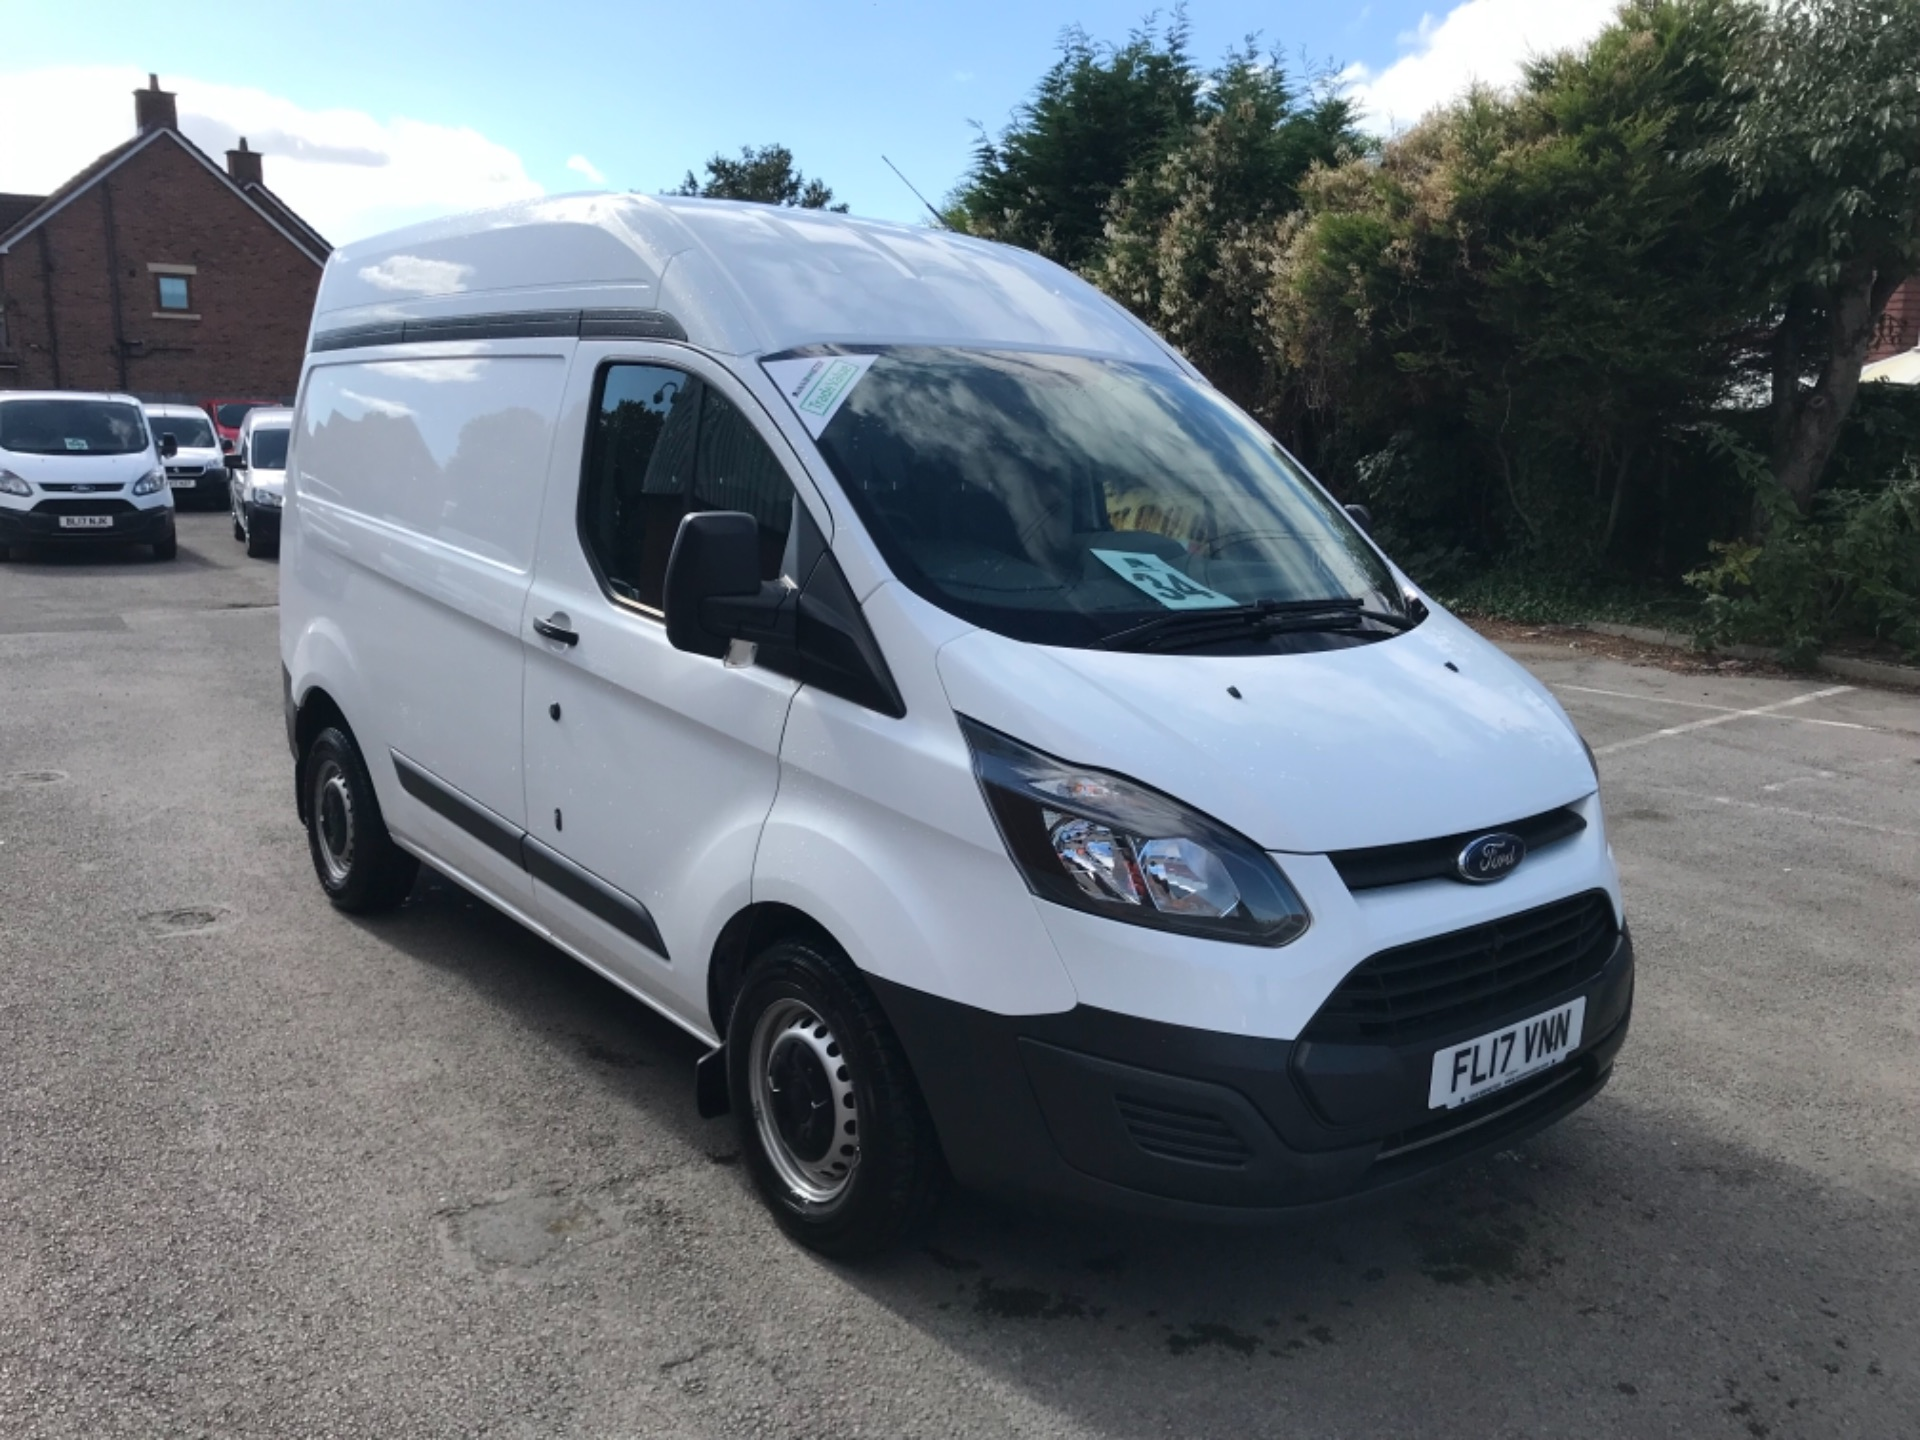 2017 Ford Transit Custom 2.0 Tdci 105Ps High Roof Van EURO 6 (FL17VNN)